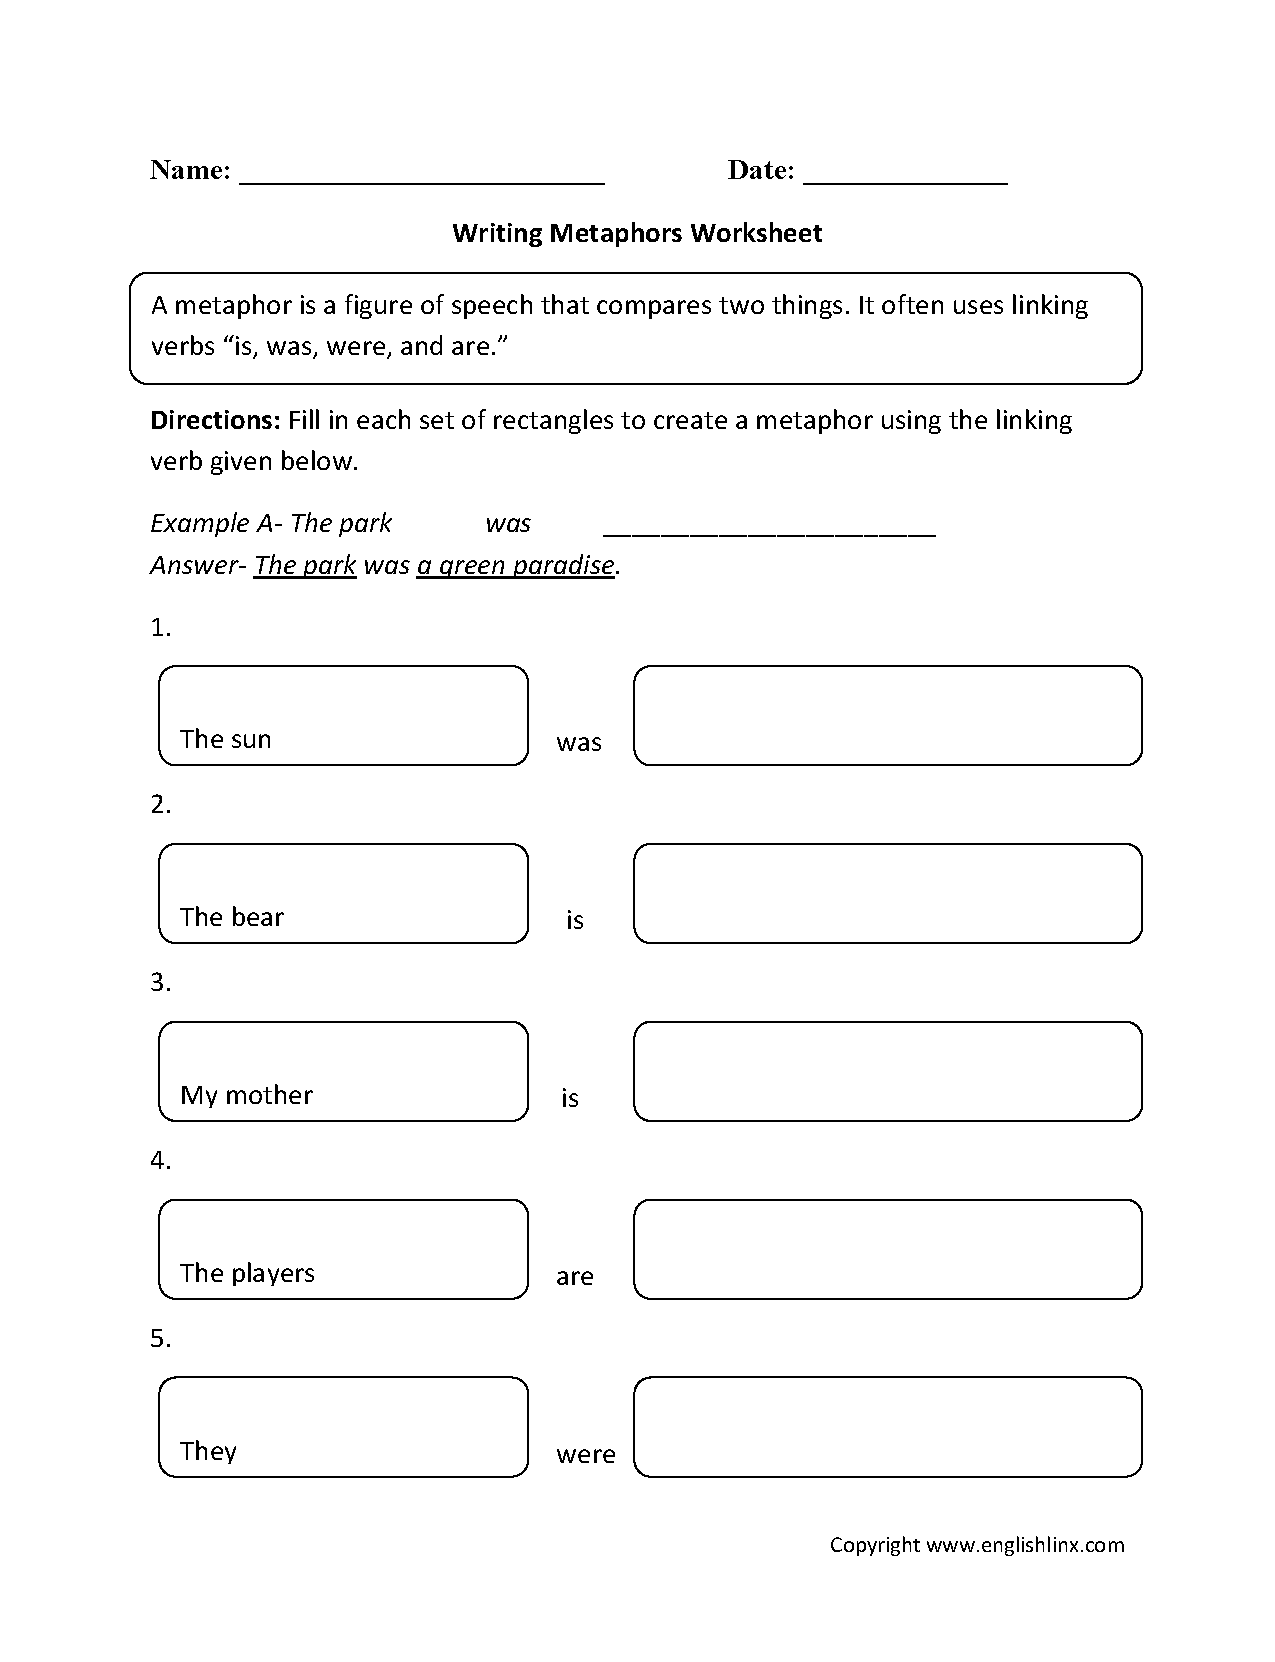 Aldiablosus  Personable Englishlinxcom  Metaphors Worksheets With Licious Worksheet With Appealing Printable Phonic Worksheets Also Worksheets On Patterns In Addition Bill Of Rights Scenario Worksheet And Whole Number Multiplication Worksheets As Well As Addition And Subtraction Of Rational Expressions Worksheets Additionally Geographic Terms Worksheet From Englishlinxcom With Aldiablosus  Licious Englishlinxcom  Metaphors Worksheets With Appealing Worksheet And Personable Printable Phonic Worksheets Also Worksheets On Patterns In Addition Bill Of Rights Scenario Worksheet From Englishlinxcom